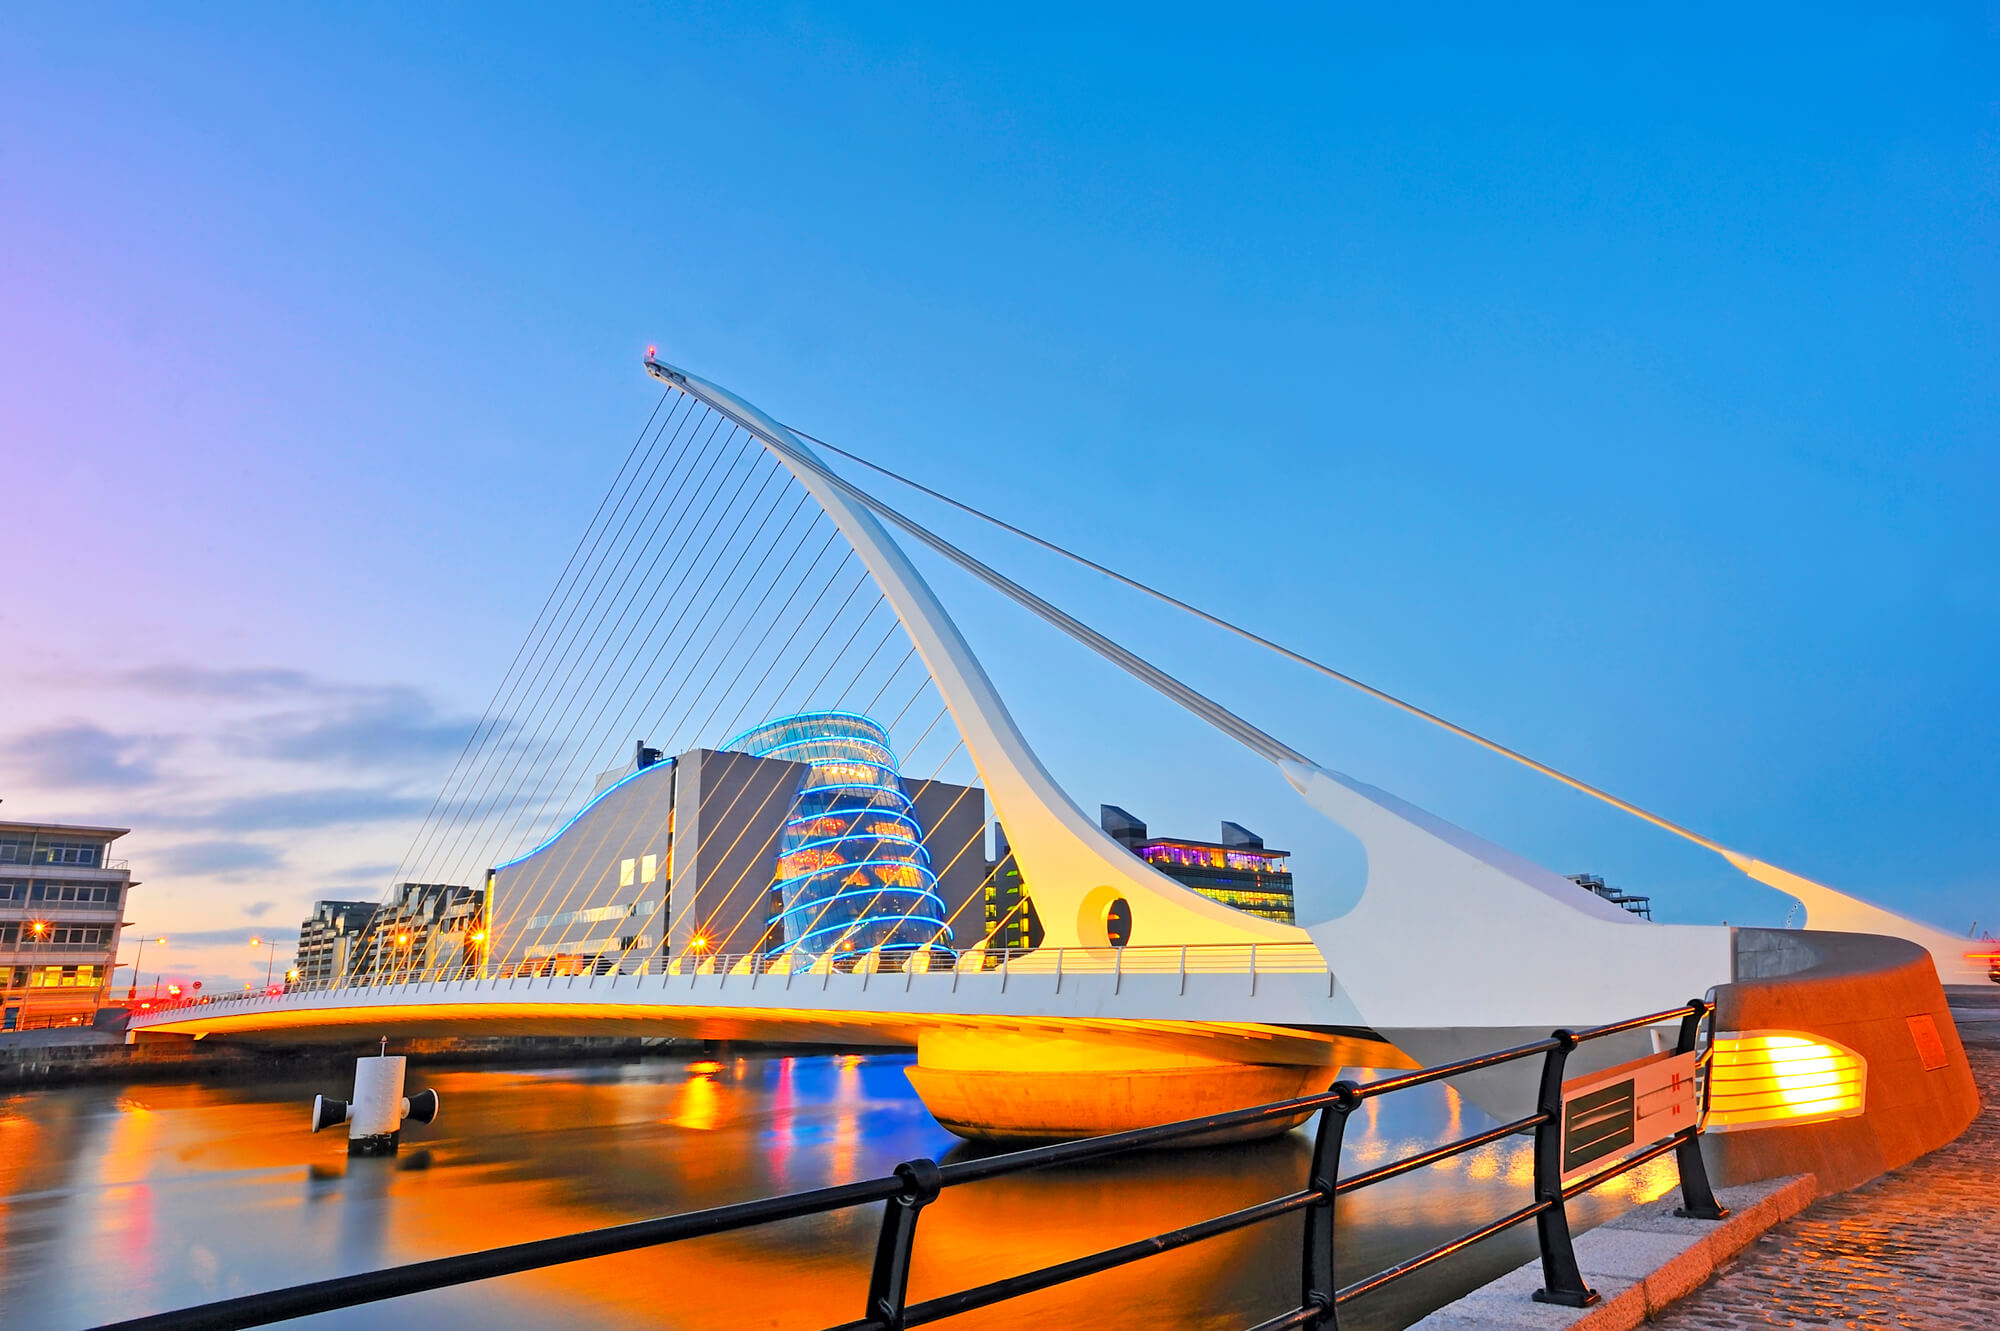 Berlin, Germany to Dublin, Ireland for only €17 roundtrip